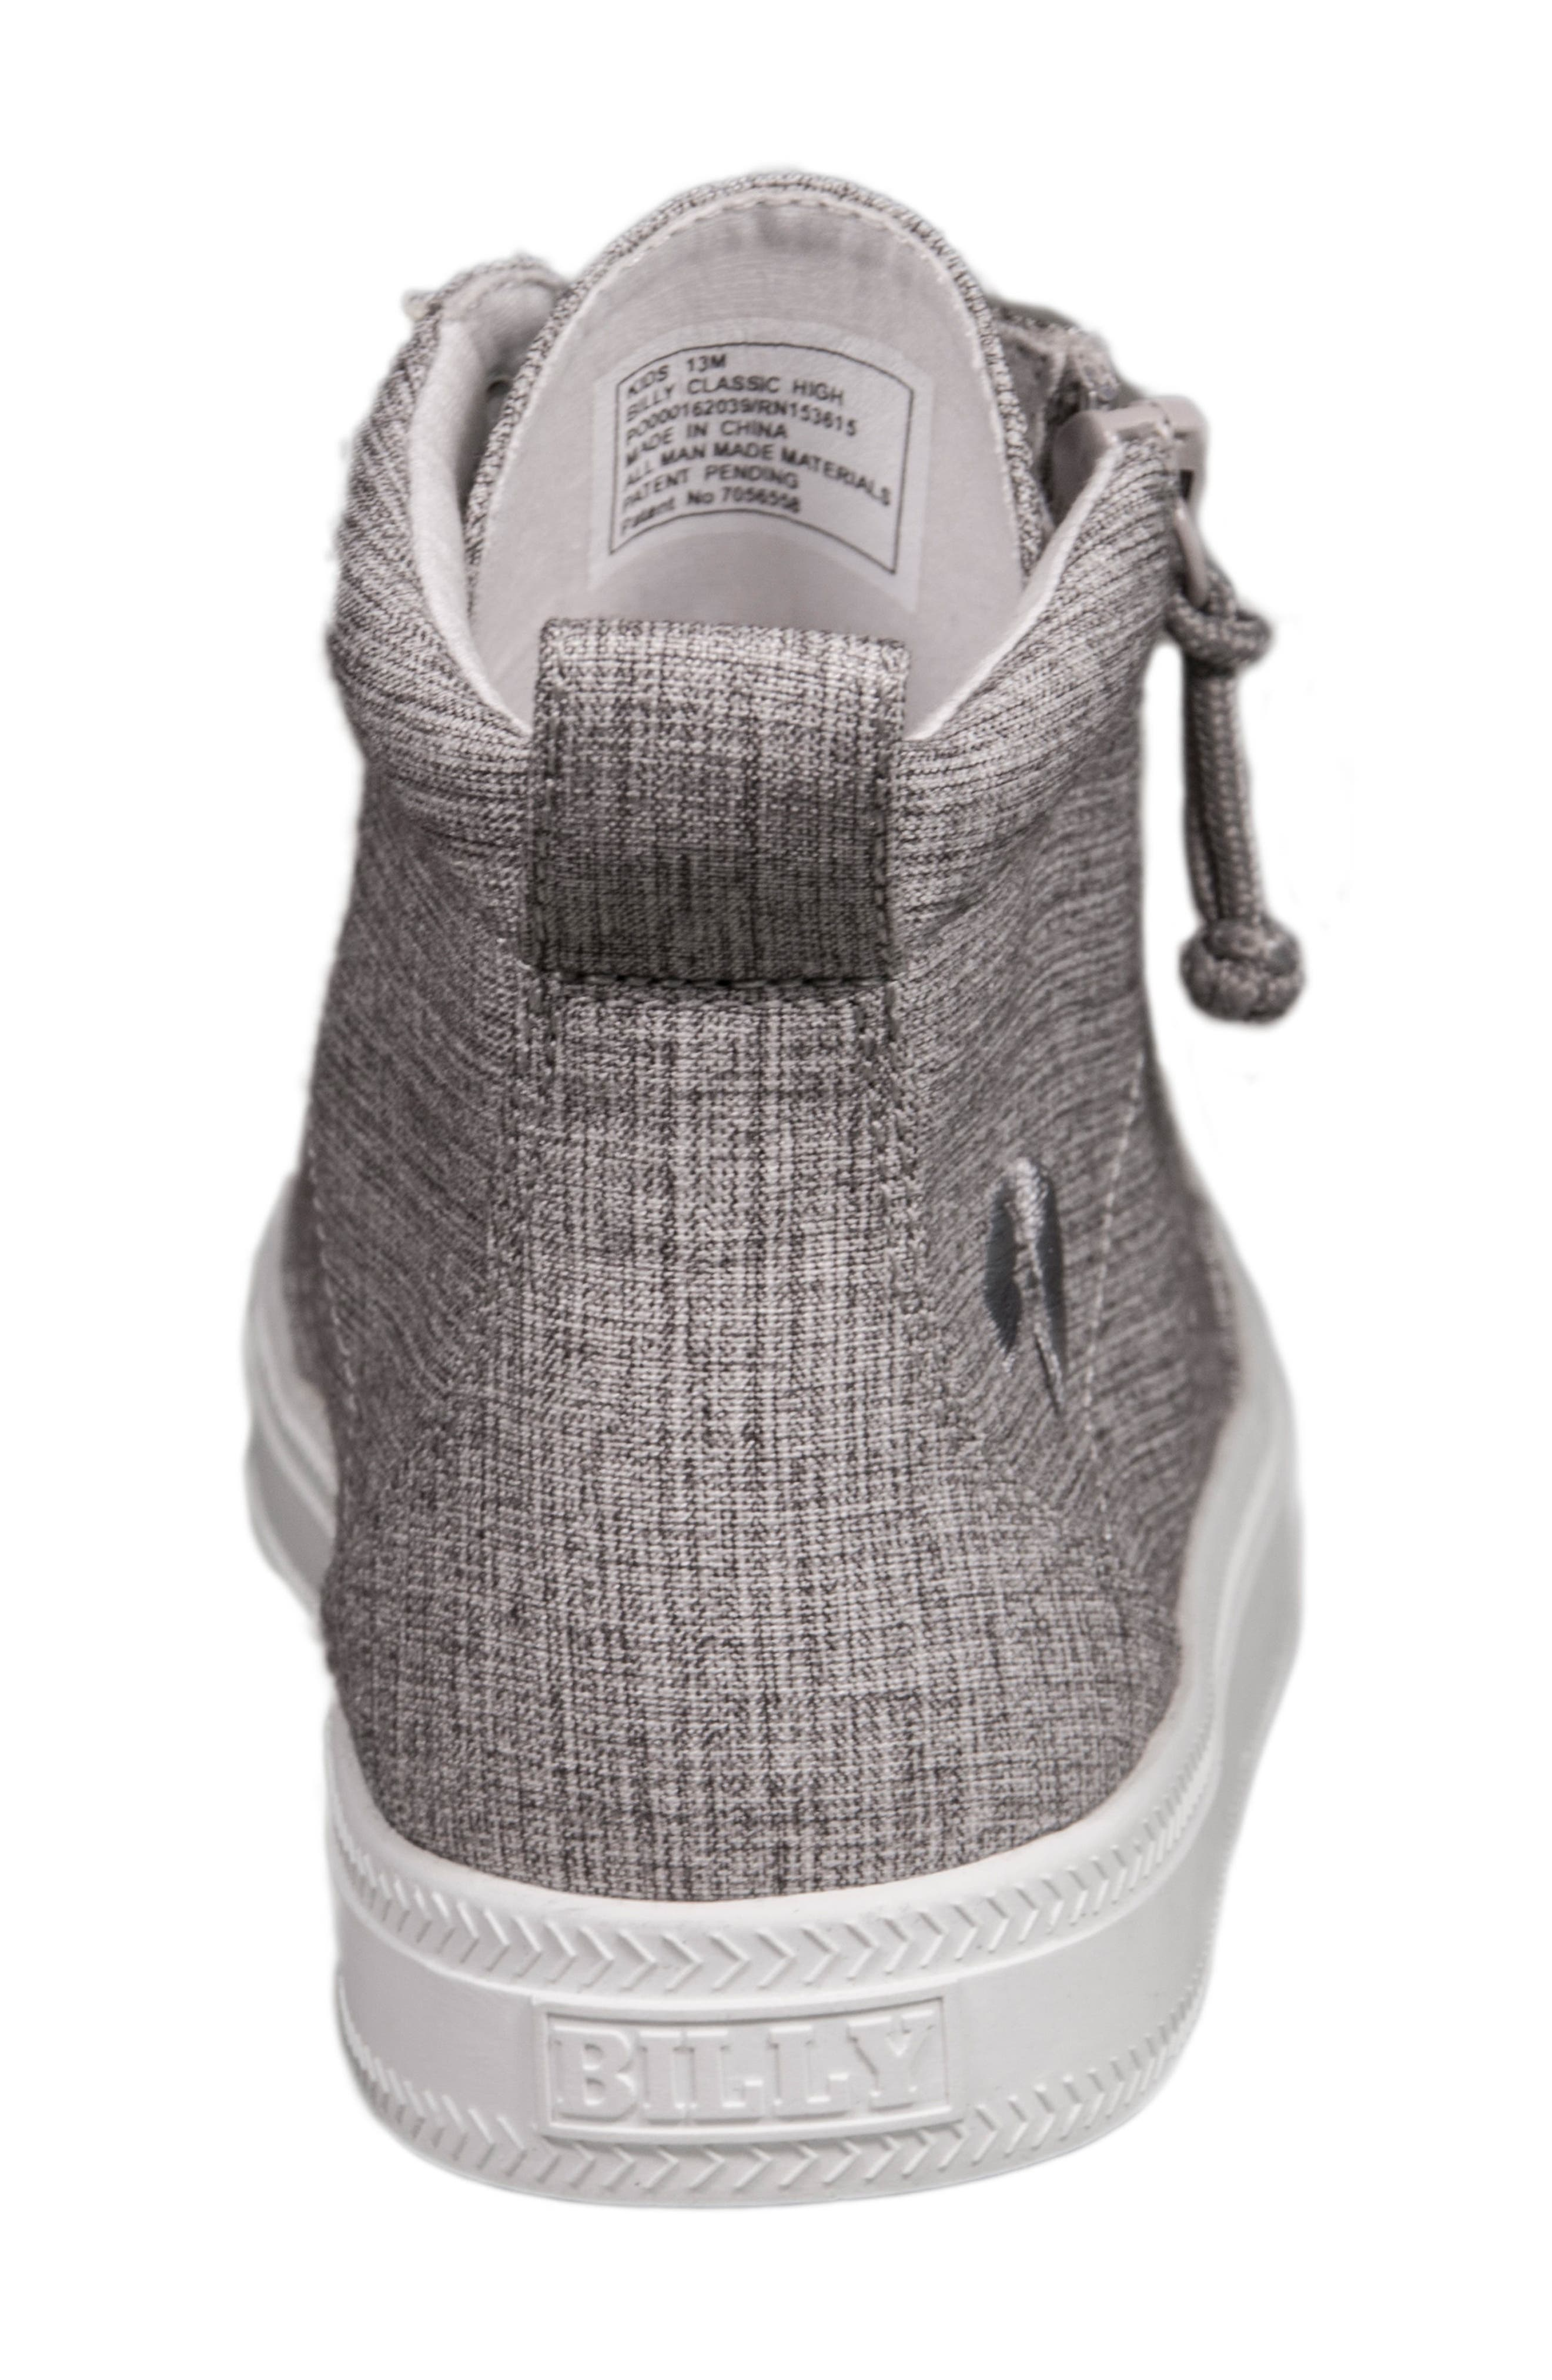 BILLY FOOTWEAR, Zip Around High Top Sneaker, Alternate thumbnail 7, color, GREY JERSEY